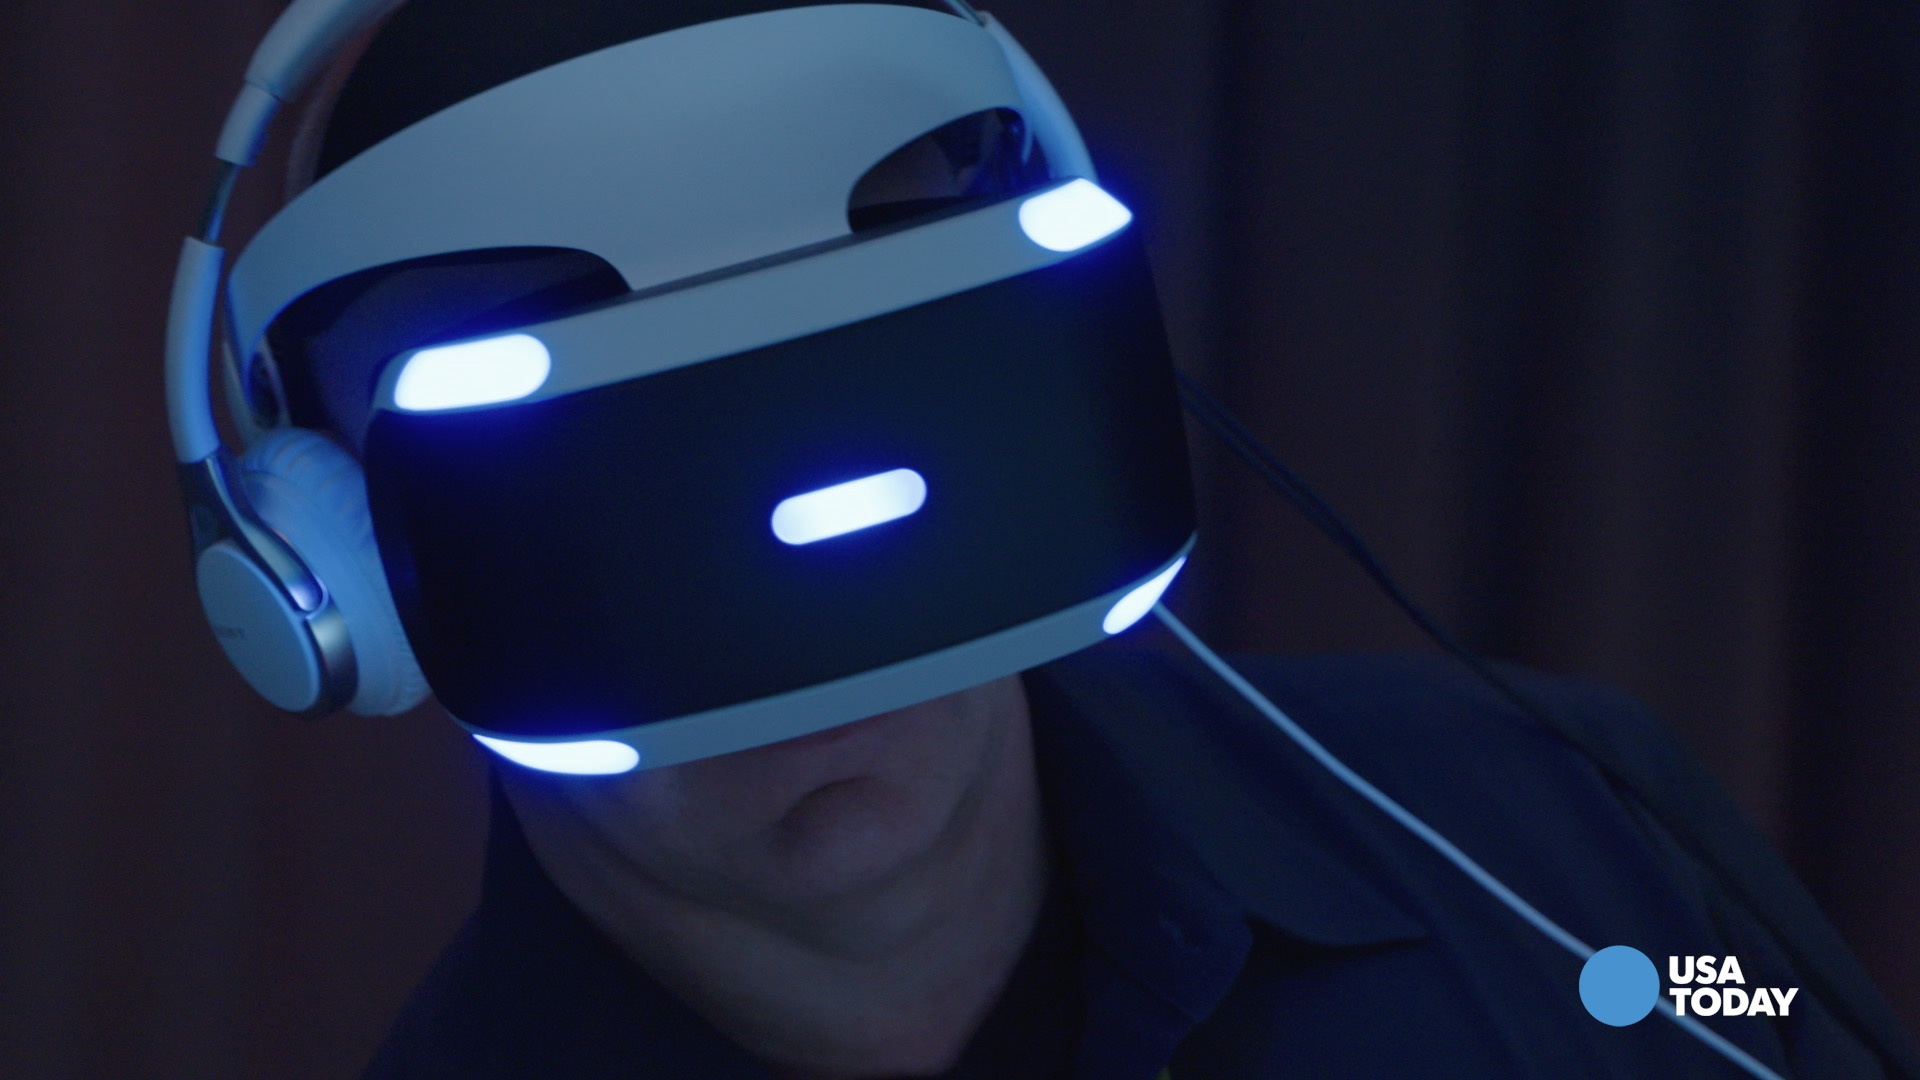 Sony's Magic Lab head Richard Marks talks to USA TODAY's Mike Snider about the different tye of games Sony is testing out for it's VR headset, Project Morpheus.